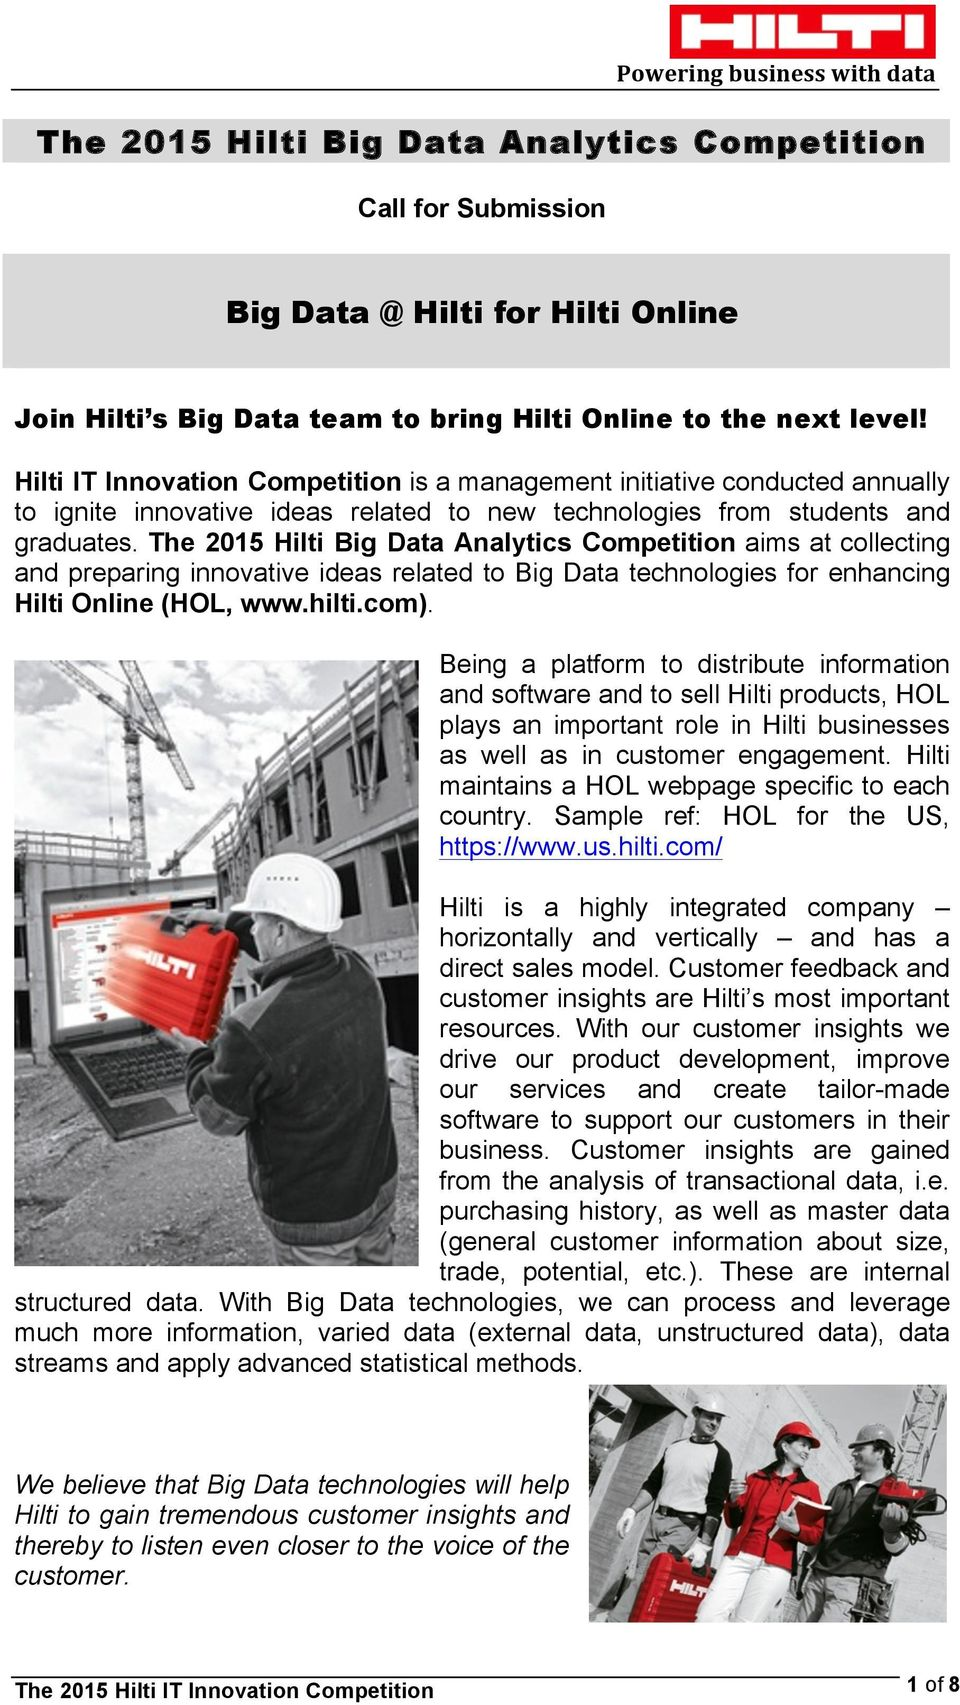 The 2015 Hilti Big Data Analytics Competition aims at collecting and preparing innovative ideas related to Big Data technologies for enhancing Hilti Online (HOL, www.hilti.com).